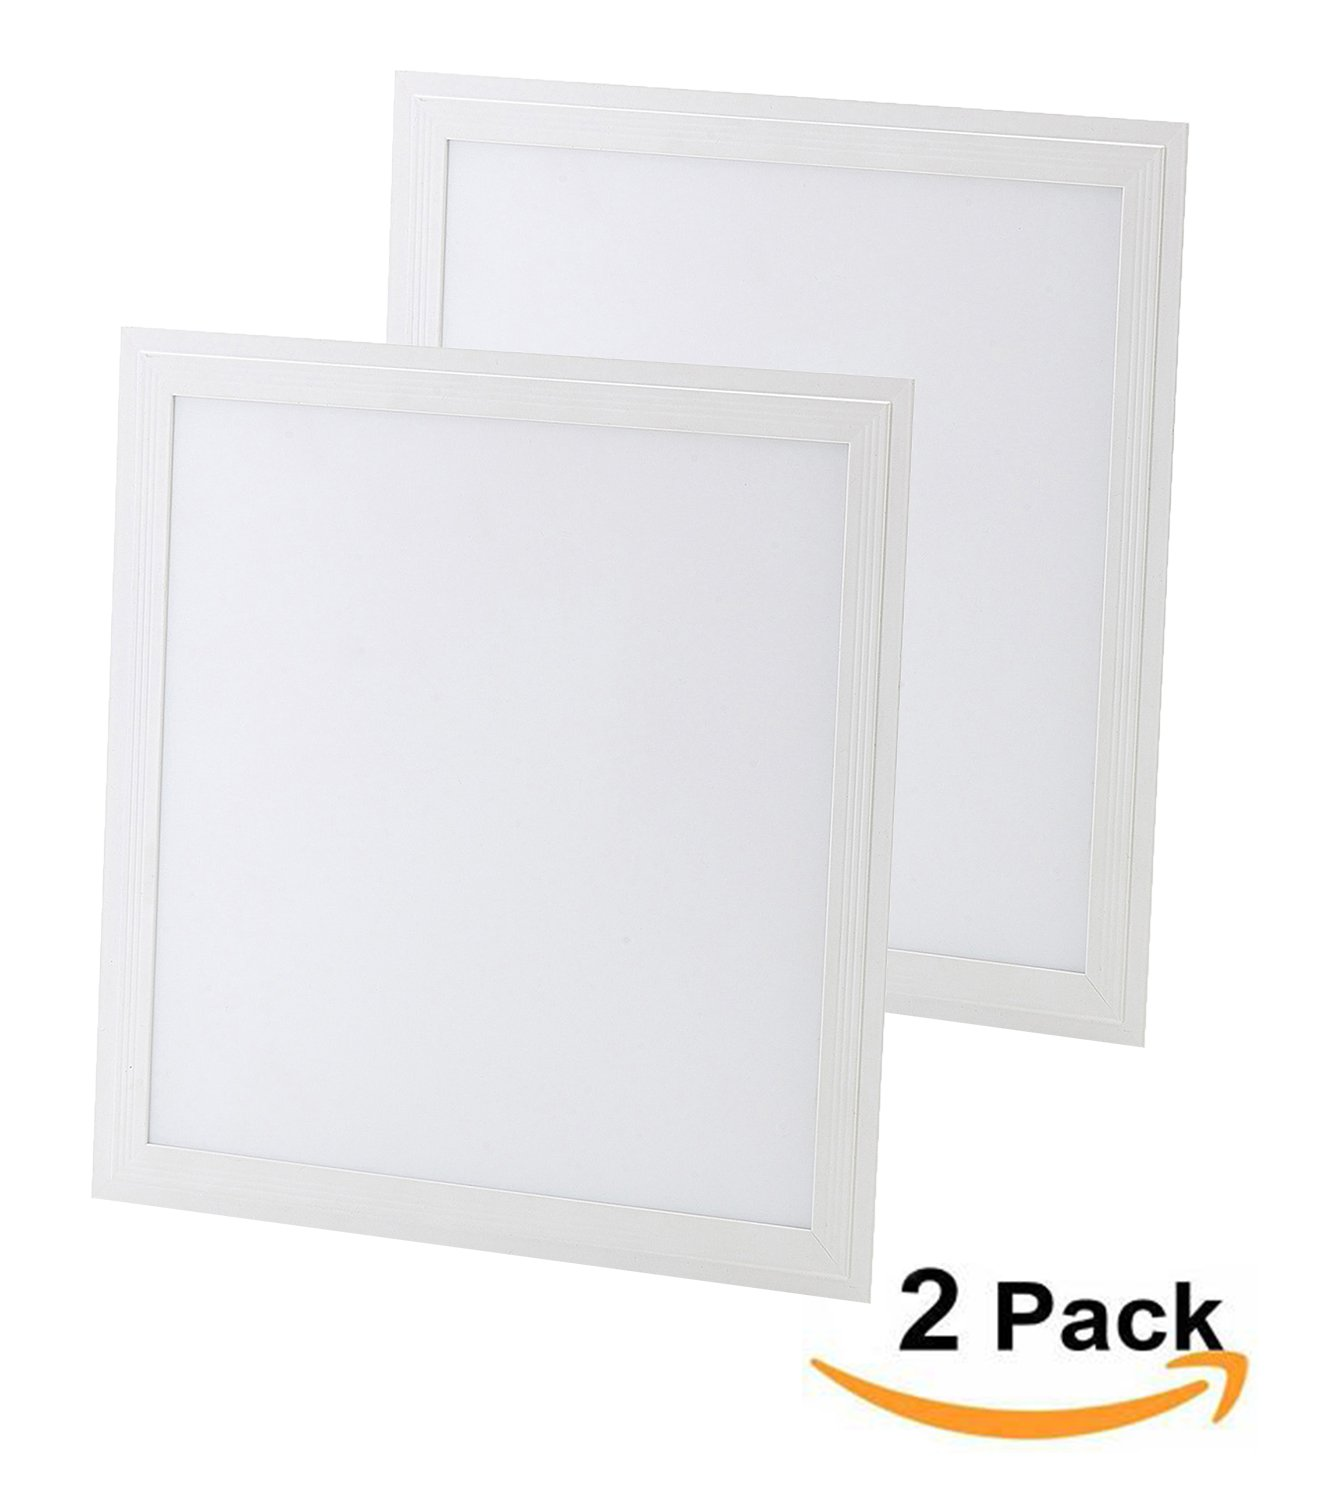 Hagolight LED Flat Square Ultra Thin Recessed Ceiling Light 38W 24''x24'' Flush Mounted Panel Lamp Light Cool White 6000-6500K With LED Driver AC85-265V-2 Pack